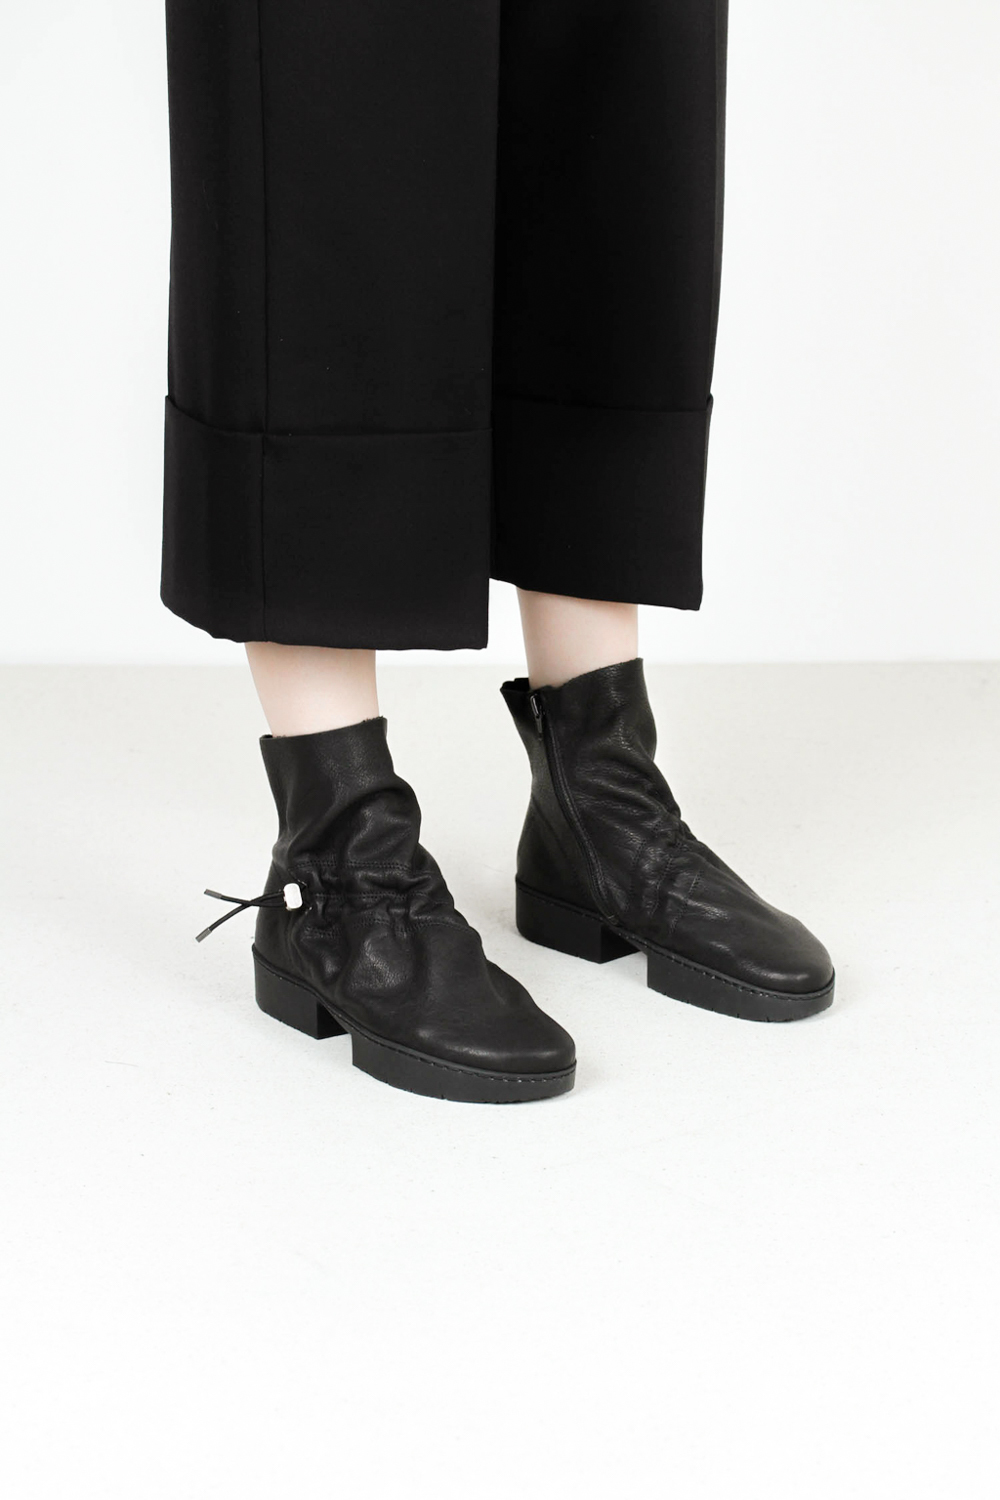 Trippen subway f vst blk leather boots